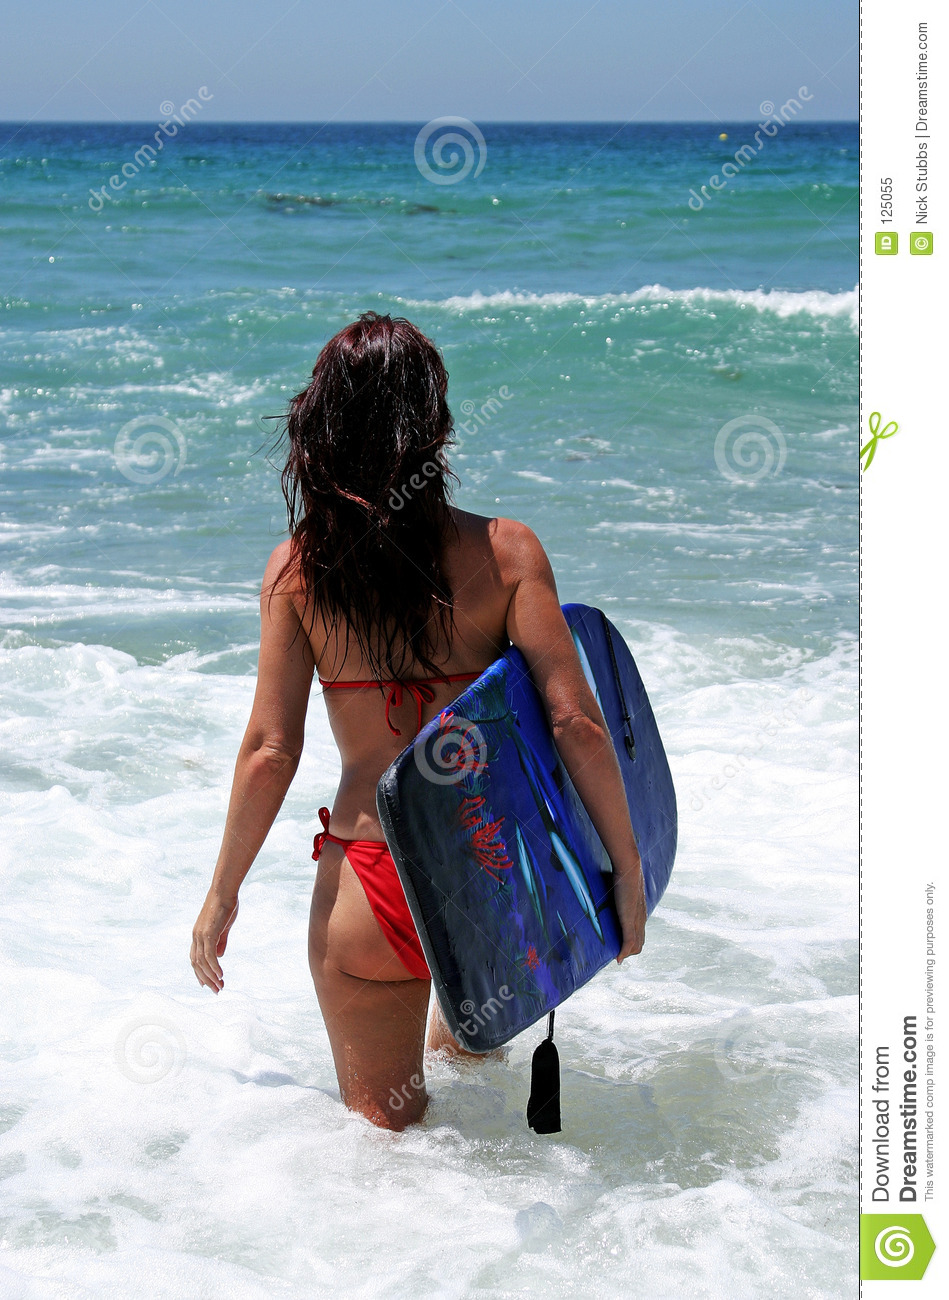 attractive young woman in red bikini walking out to blue sea on sunny beach with body board und